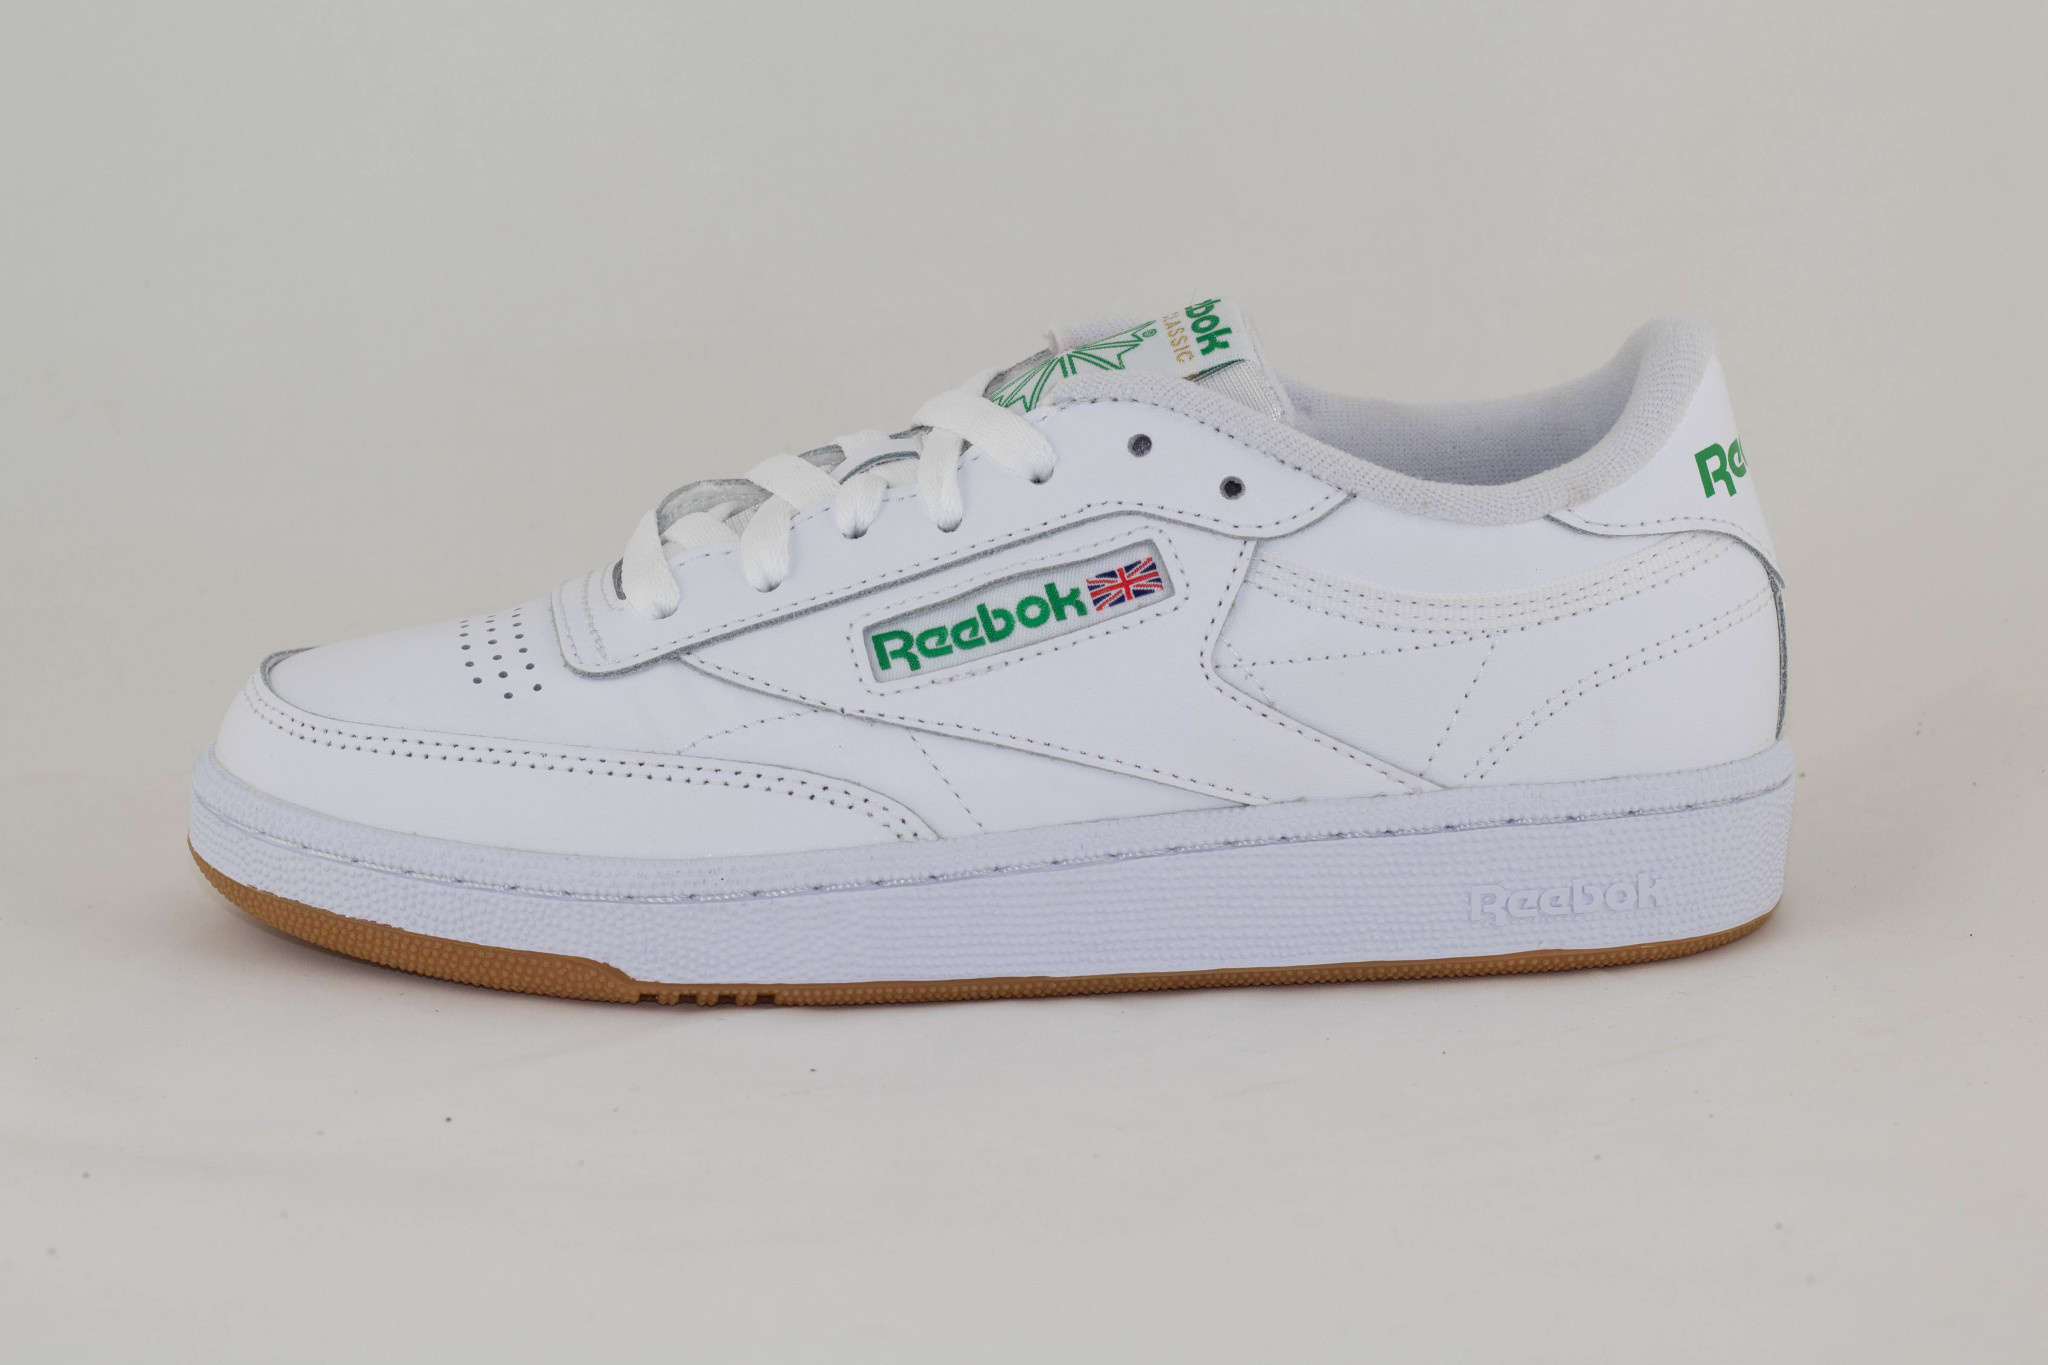 REEBOK CLUB C 85 White/ Green/ Gum